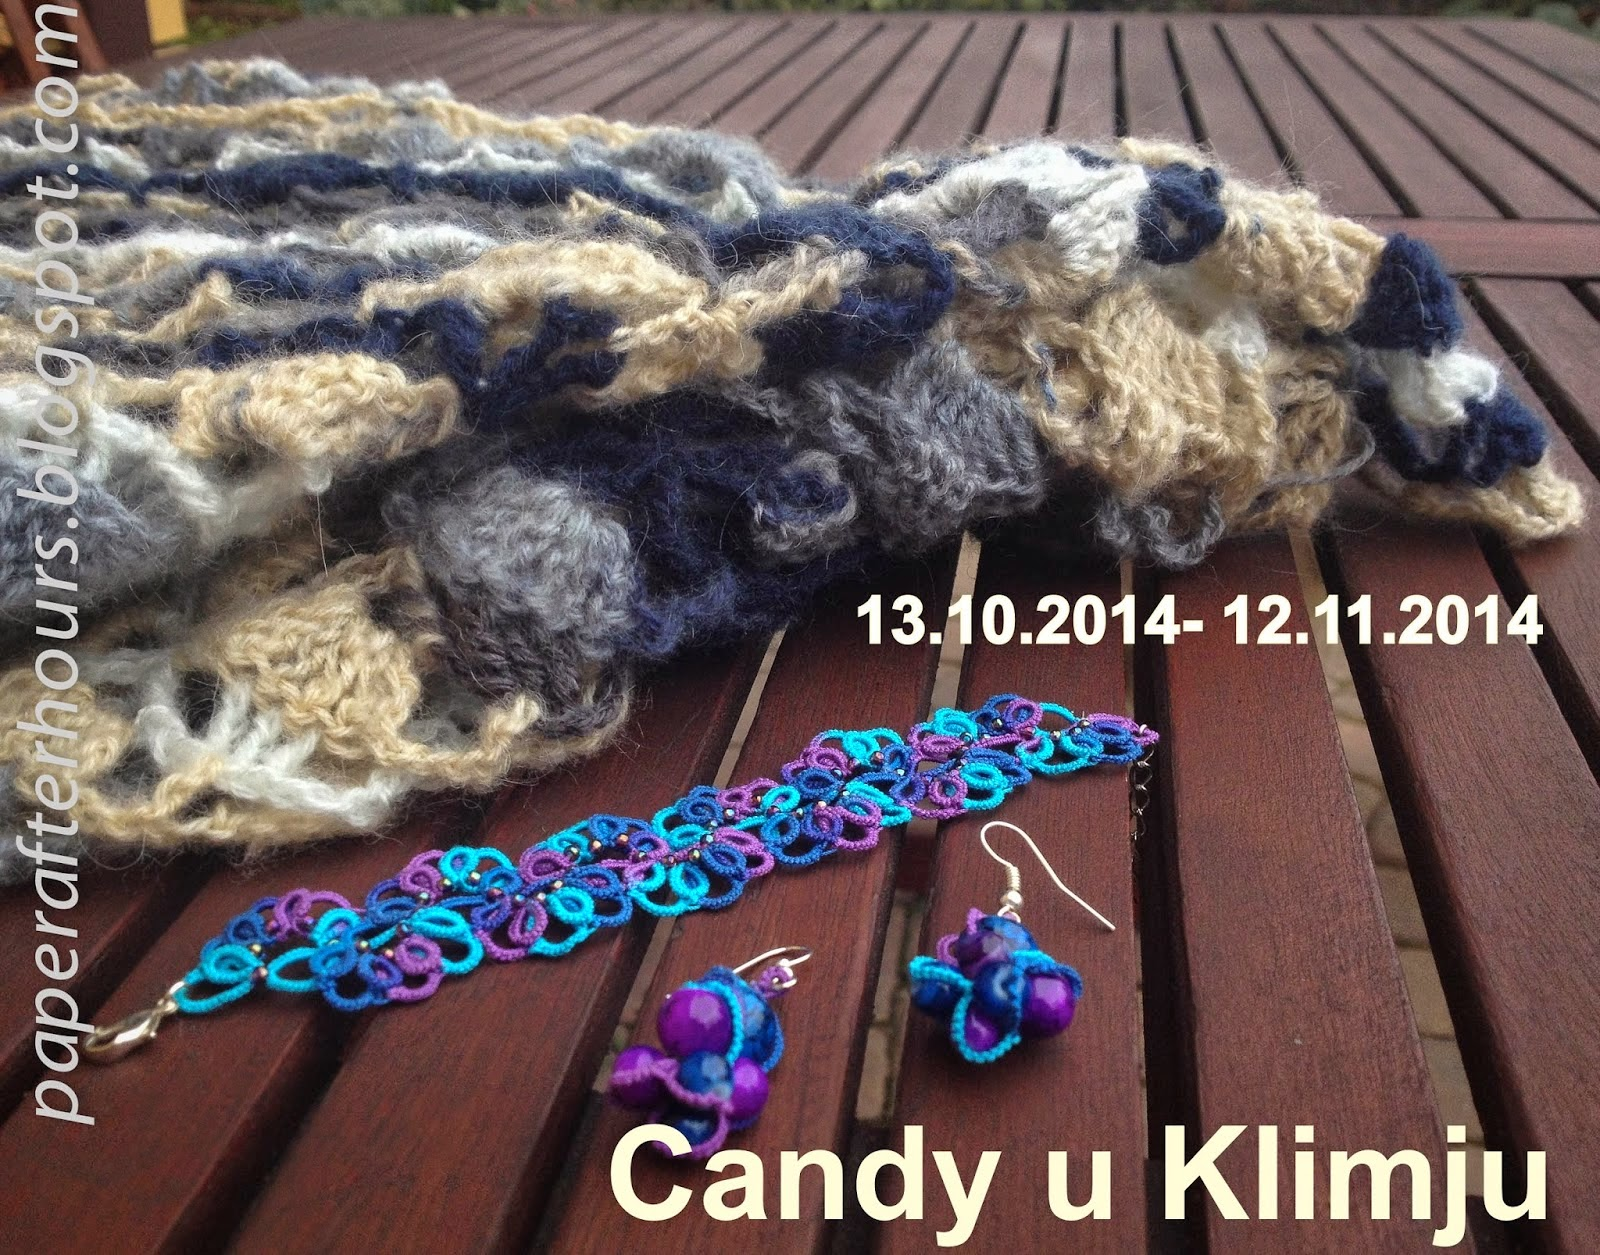 Candy u Kimlju do 13.11.